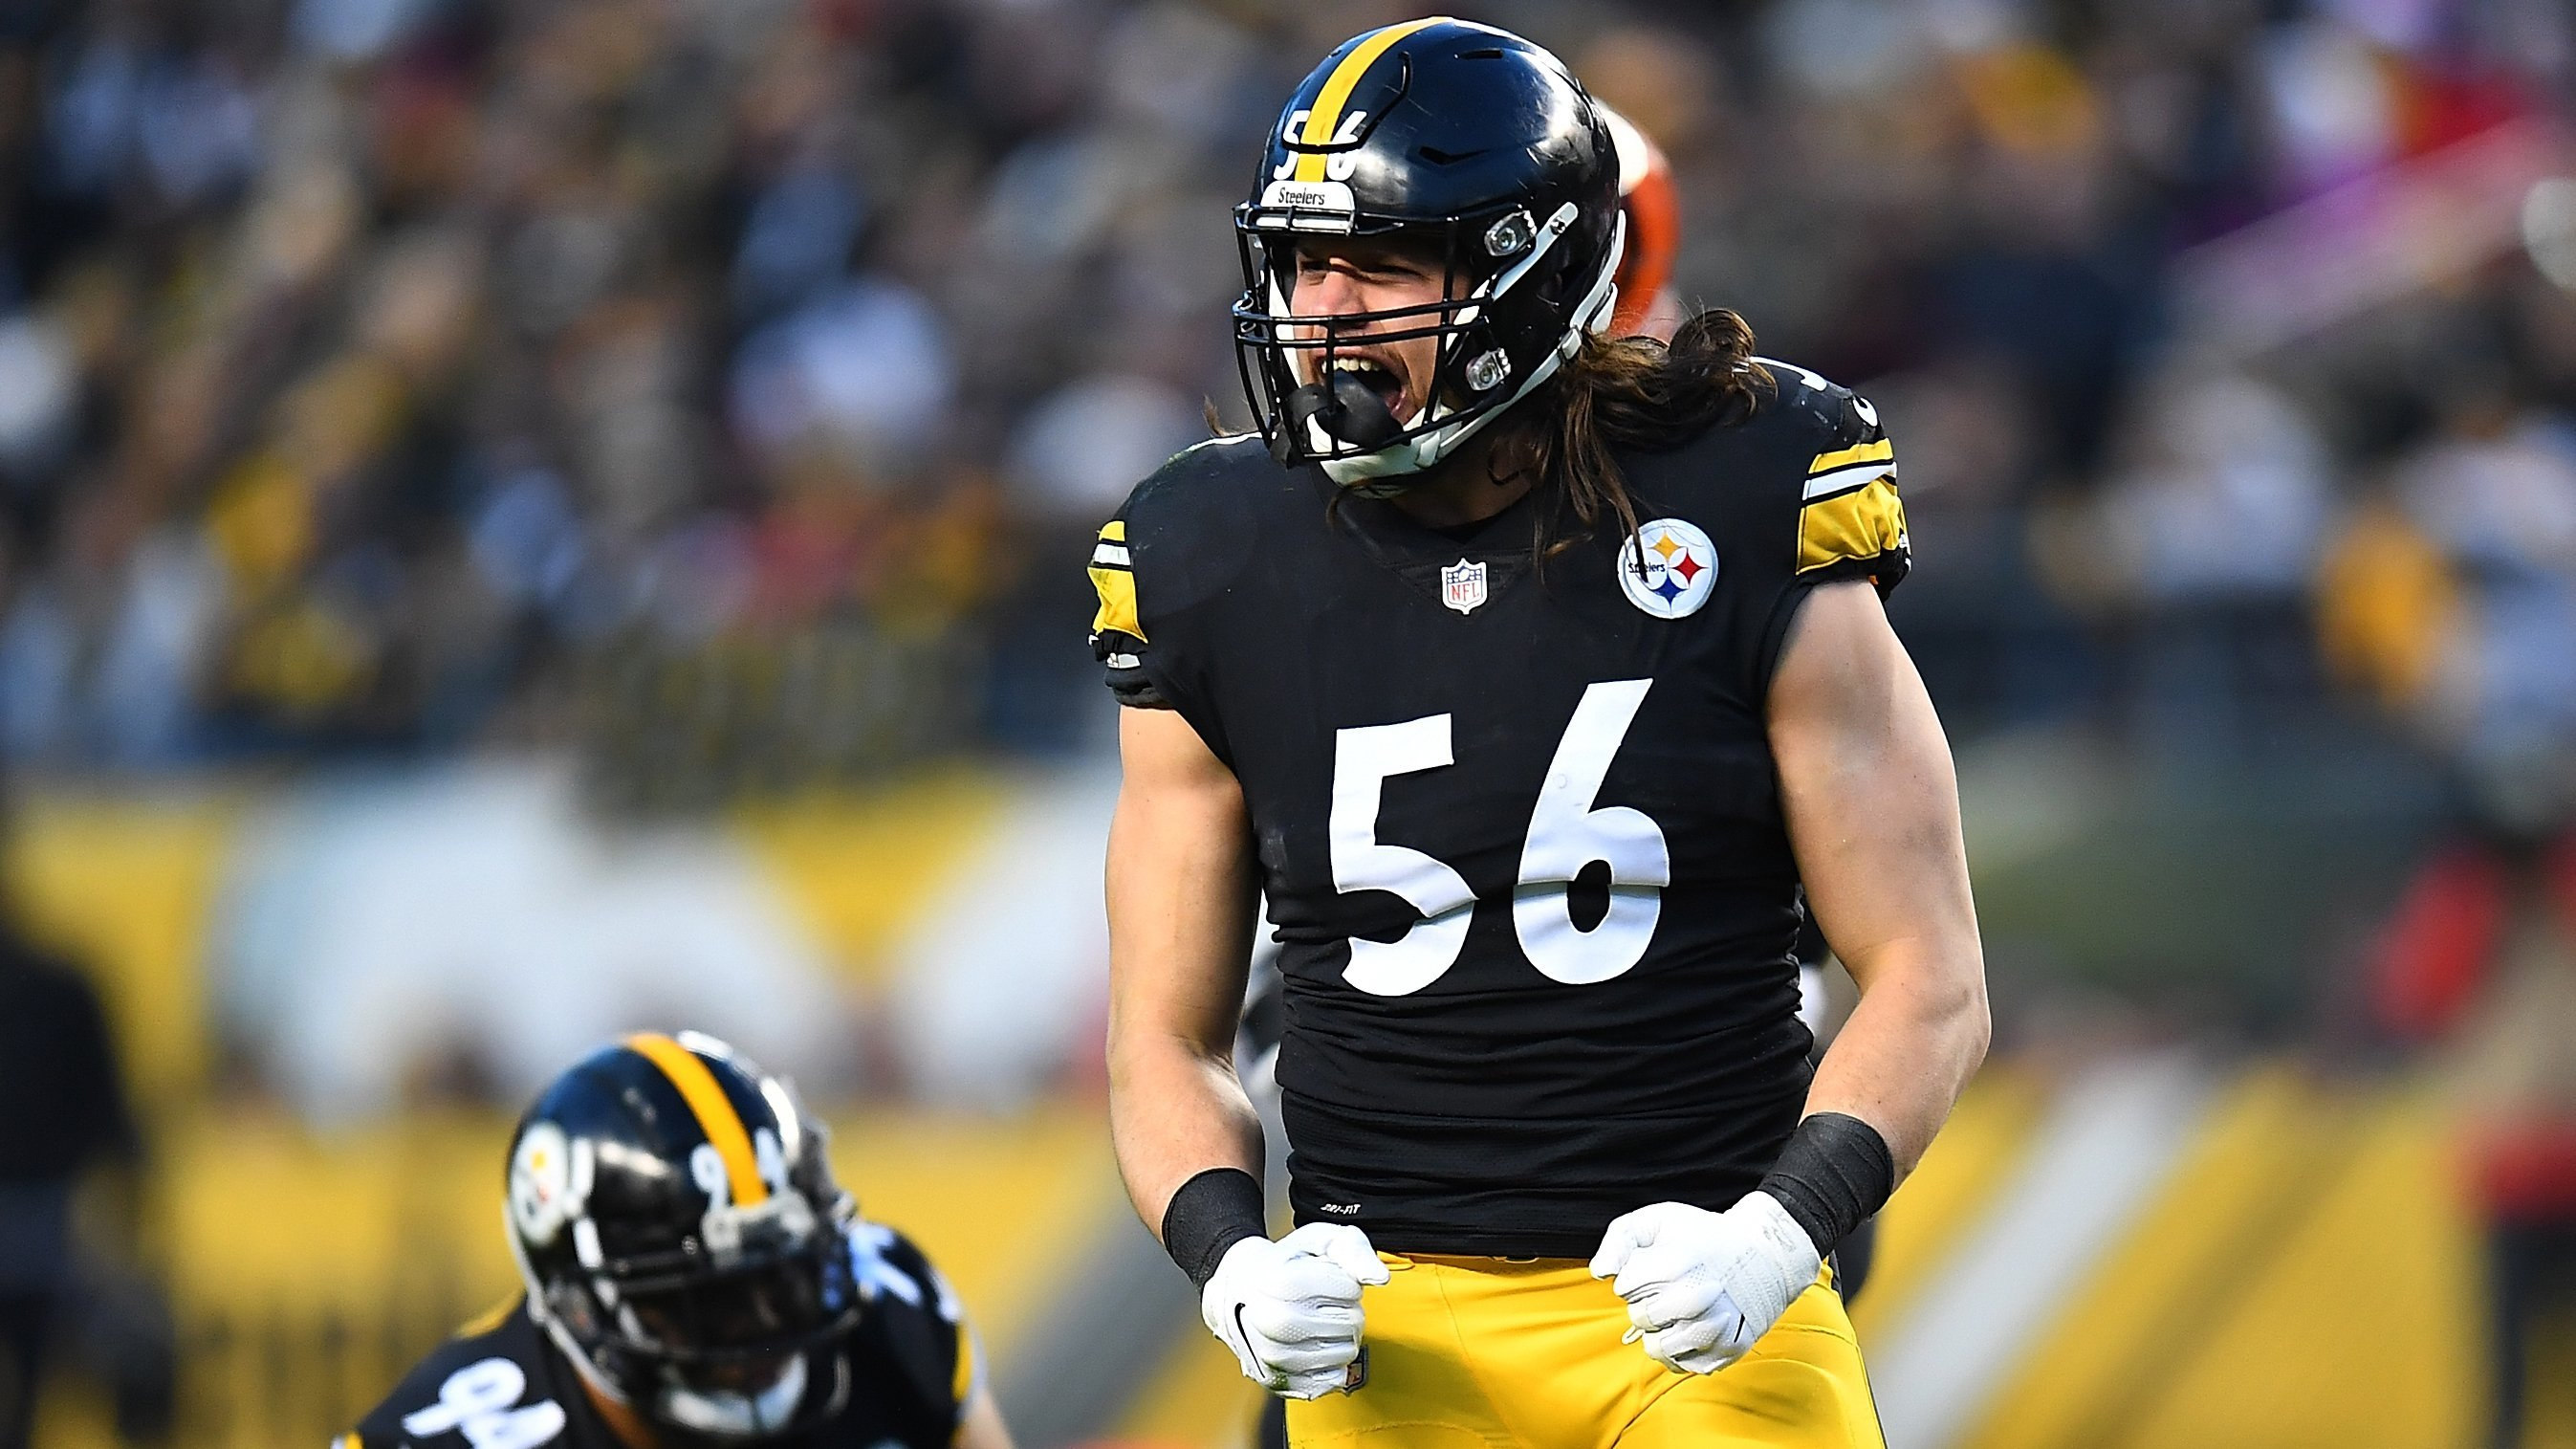 Pittsburgh Steelers linebacker Anthony Chickillo charged with assault in domestic dispute